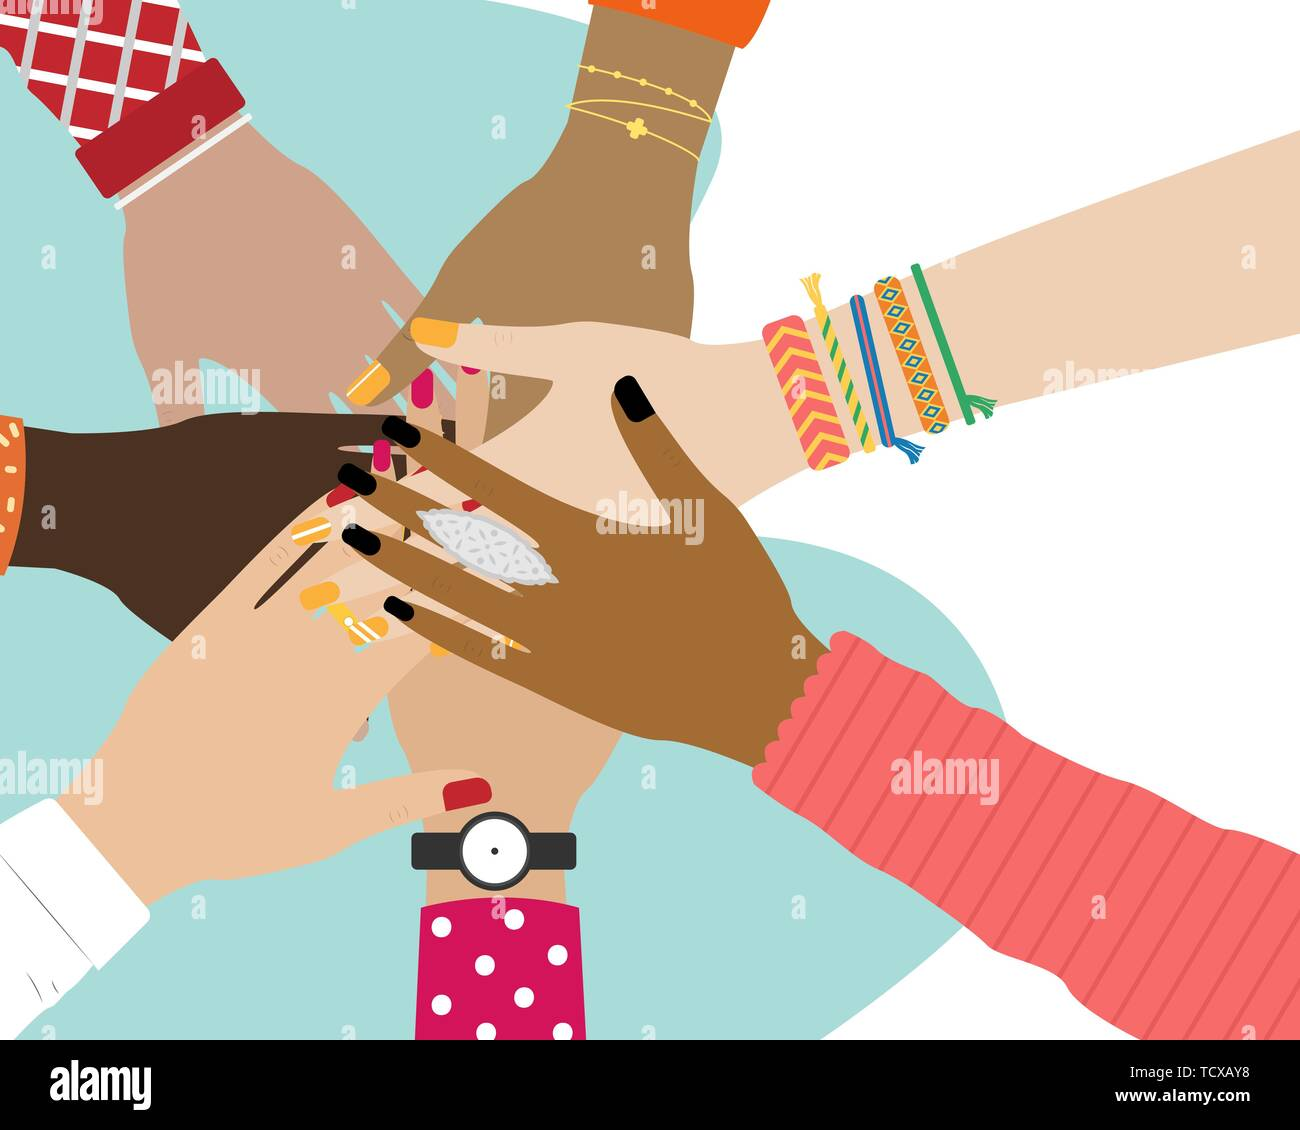 Concept of team work. Friends with stack of hands showing unity and teamwork, top view. People putting their hands together. Vector illustration. Stock Vector